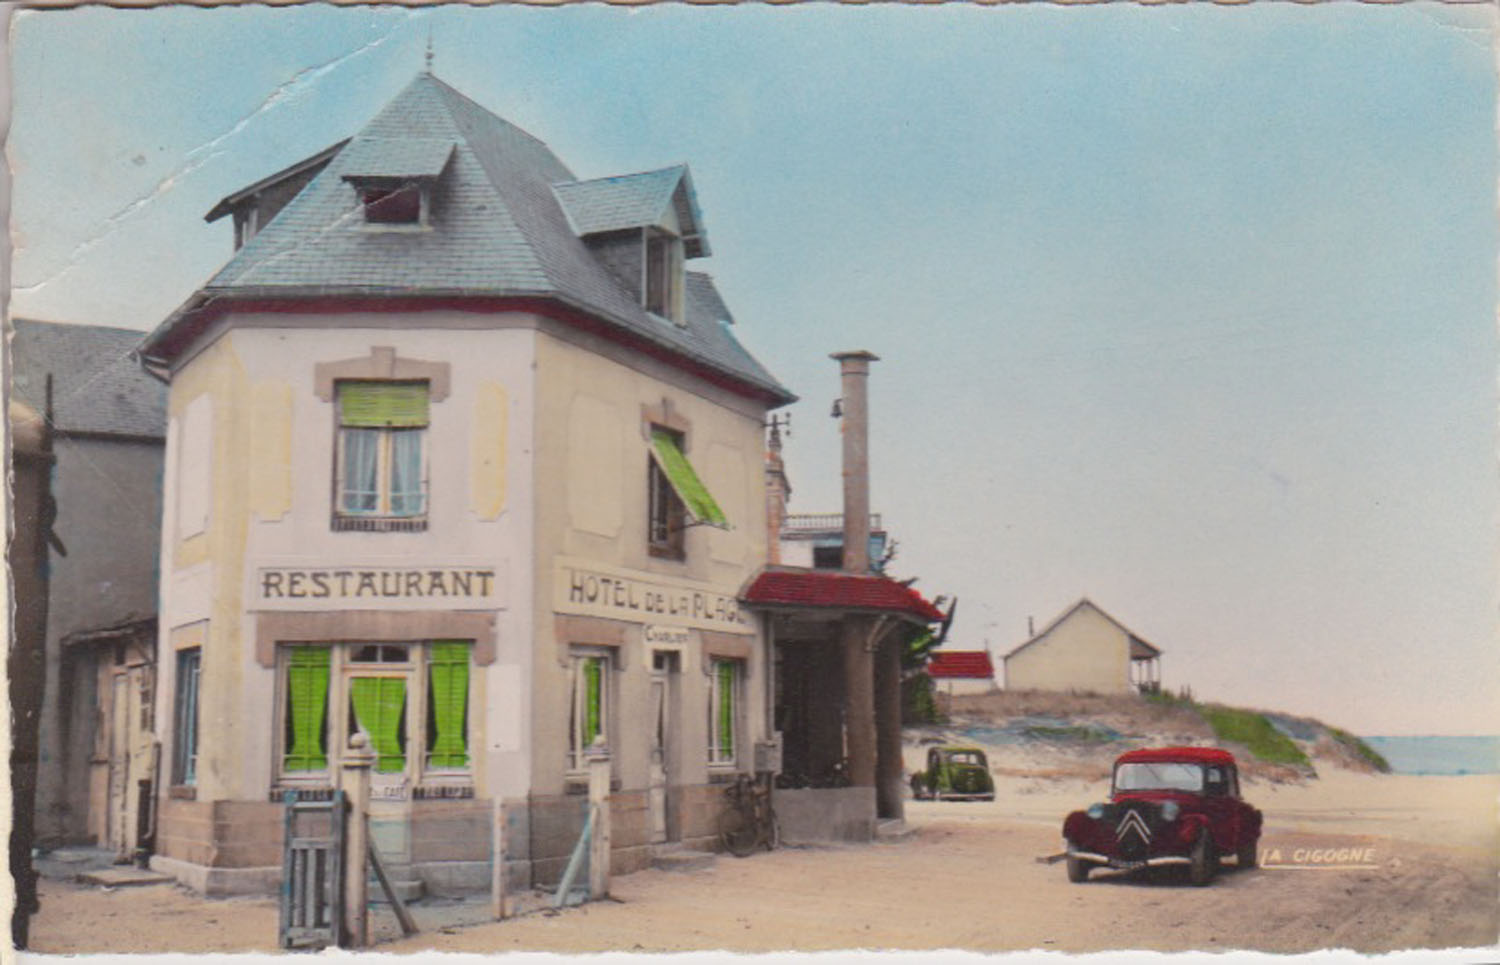 1954 St Martin Carrefour central 2 © collection Jean Claude Ferret